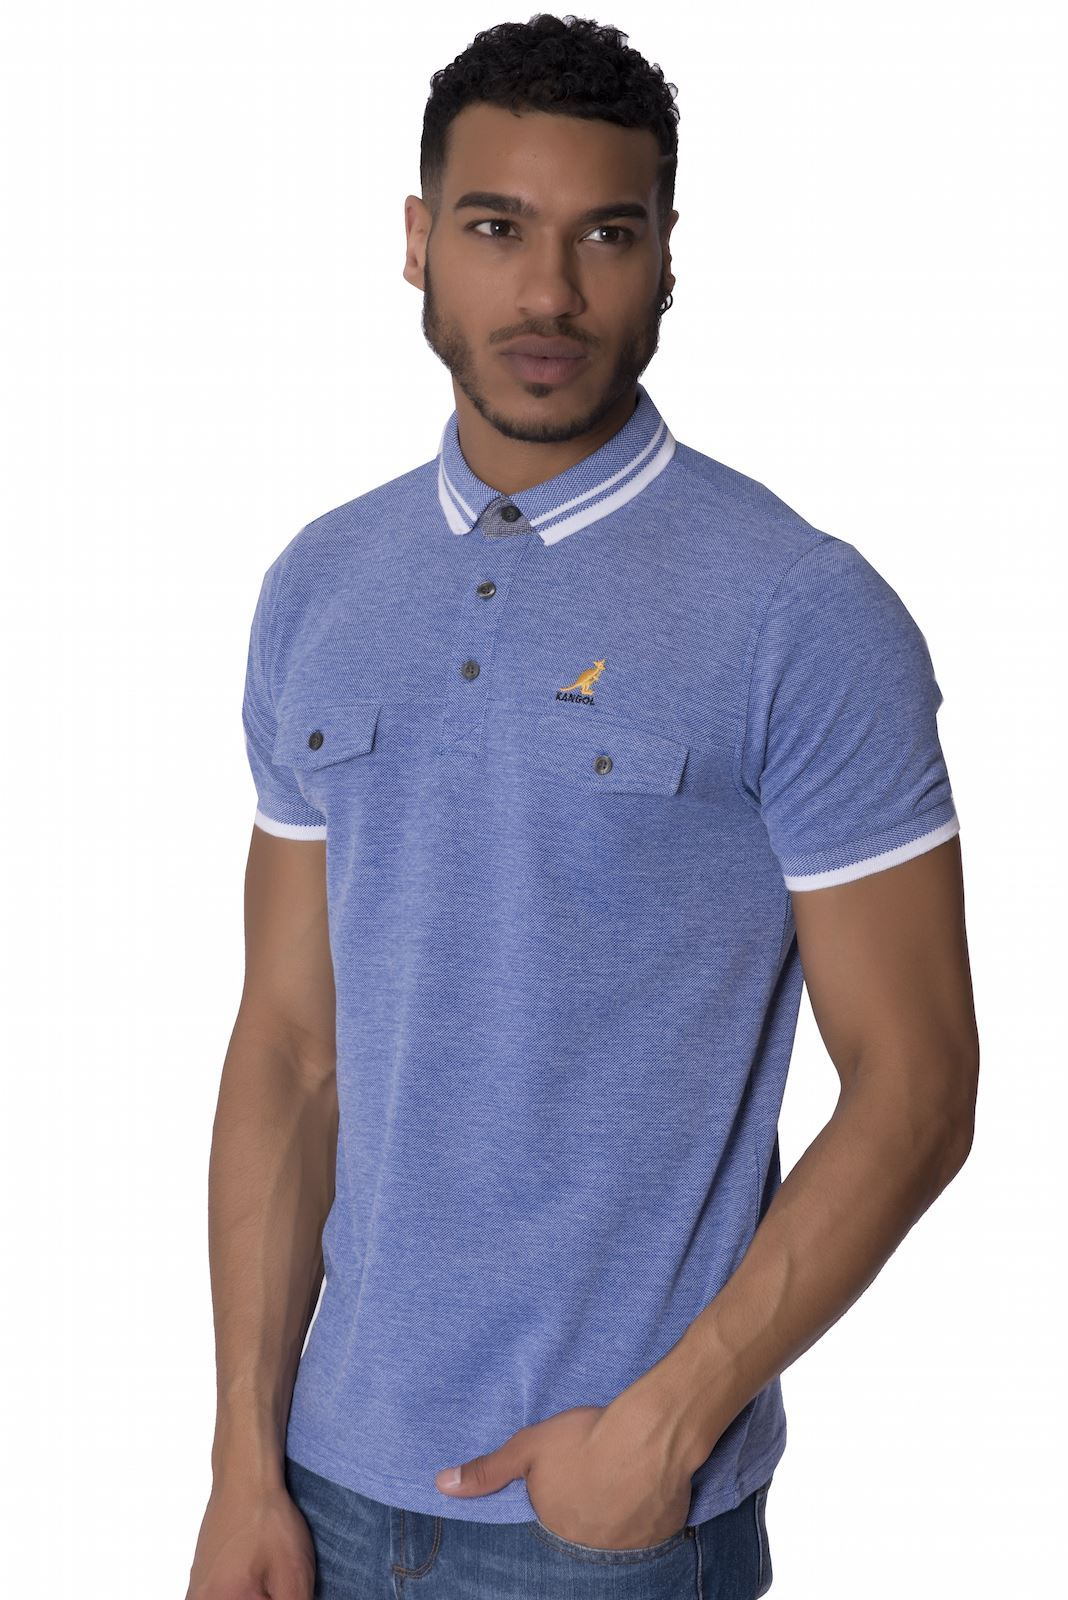 Kangol mens branded polo shirt chest pocket button up for Short sleeve polo shirt with pocket